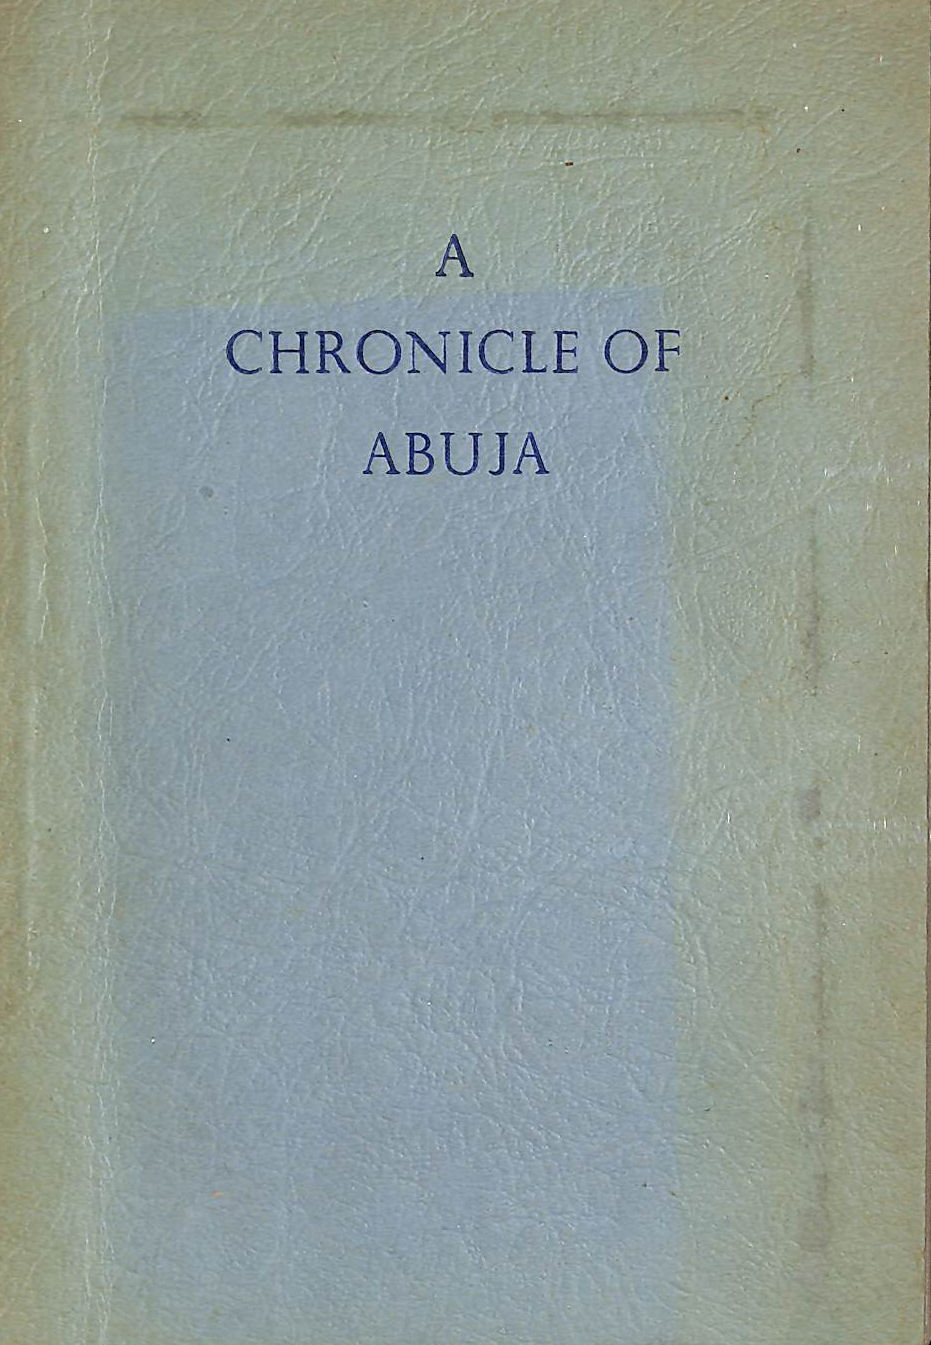 Image for A Chronicle of Abuja. Translated and arranged by Frank L. Heath from the Hausa of Malam Hassan ... and Malam Shuaibu. With plates, including portraits, and a folding Map